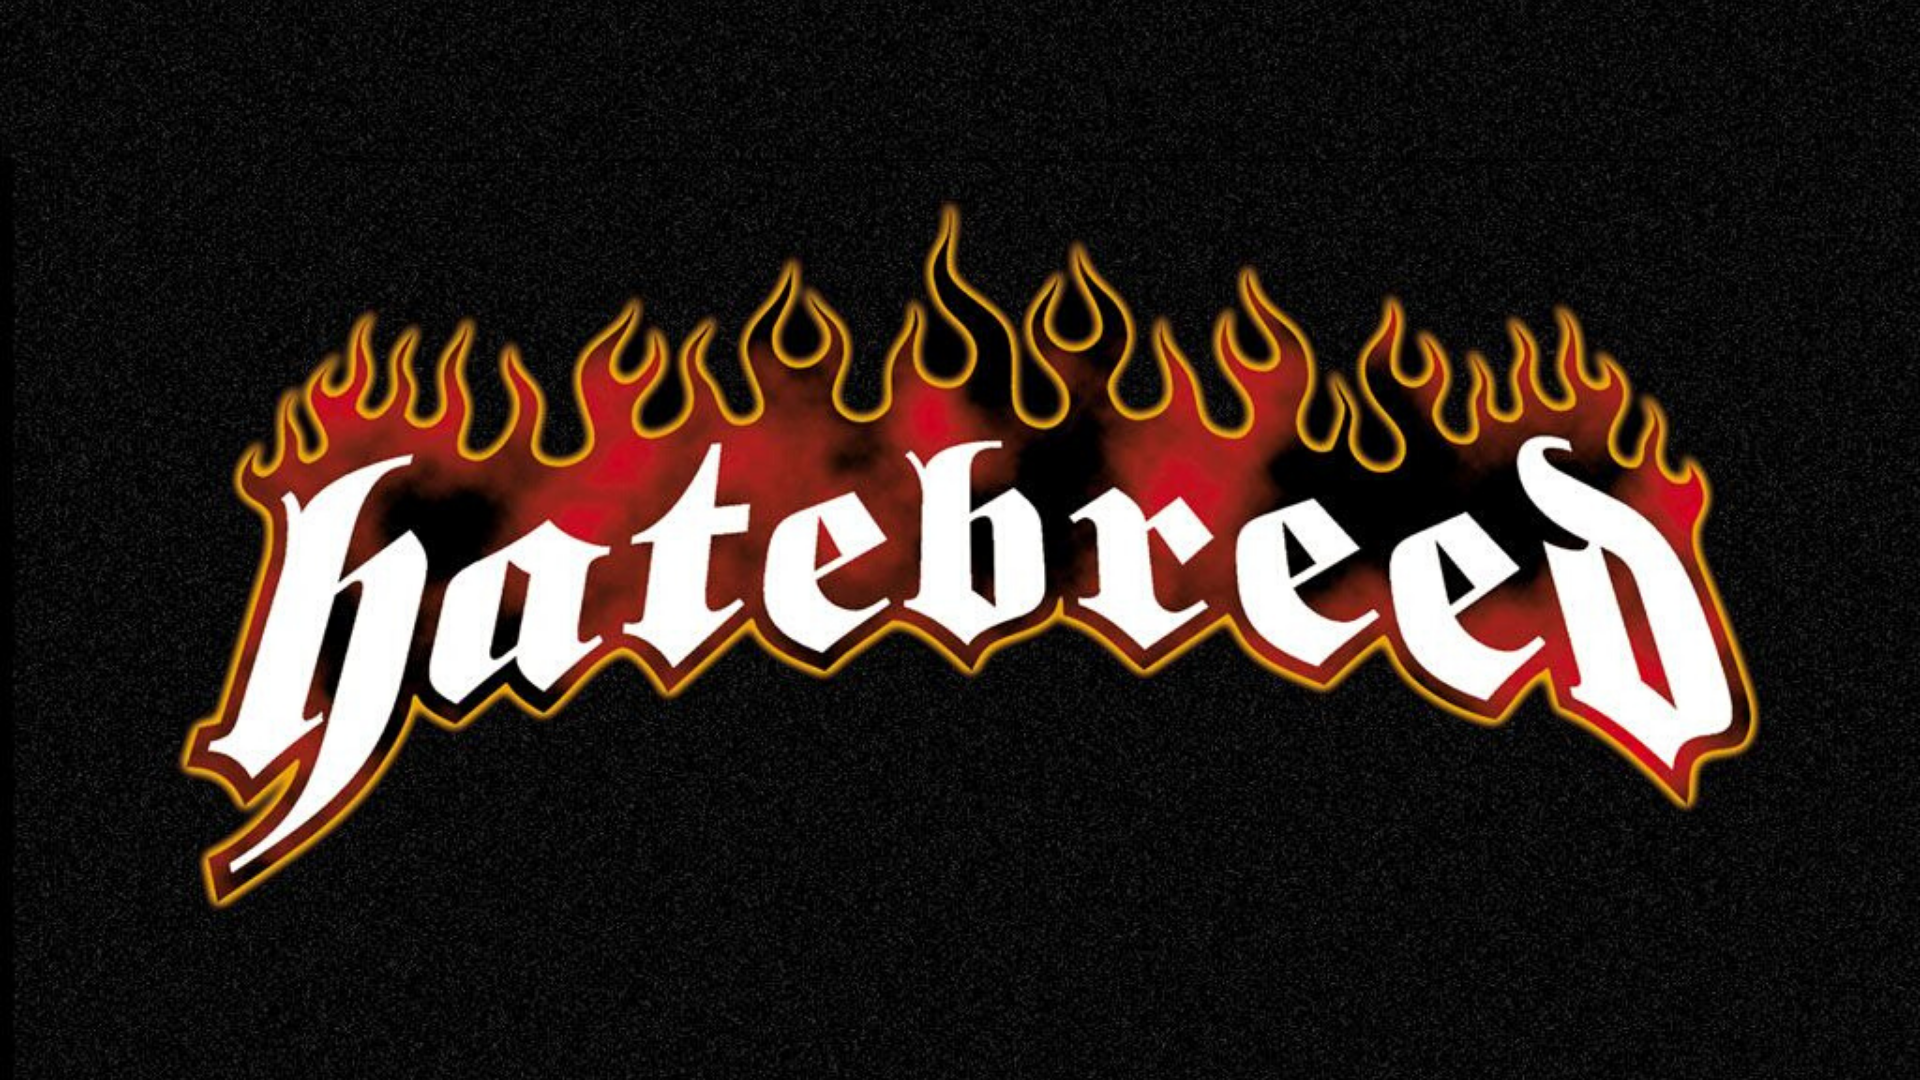 """Hatebreed"""" Returns With Their New Song In Four Yrs Titled """"When The Blade Drops."""""""